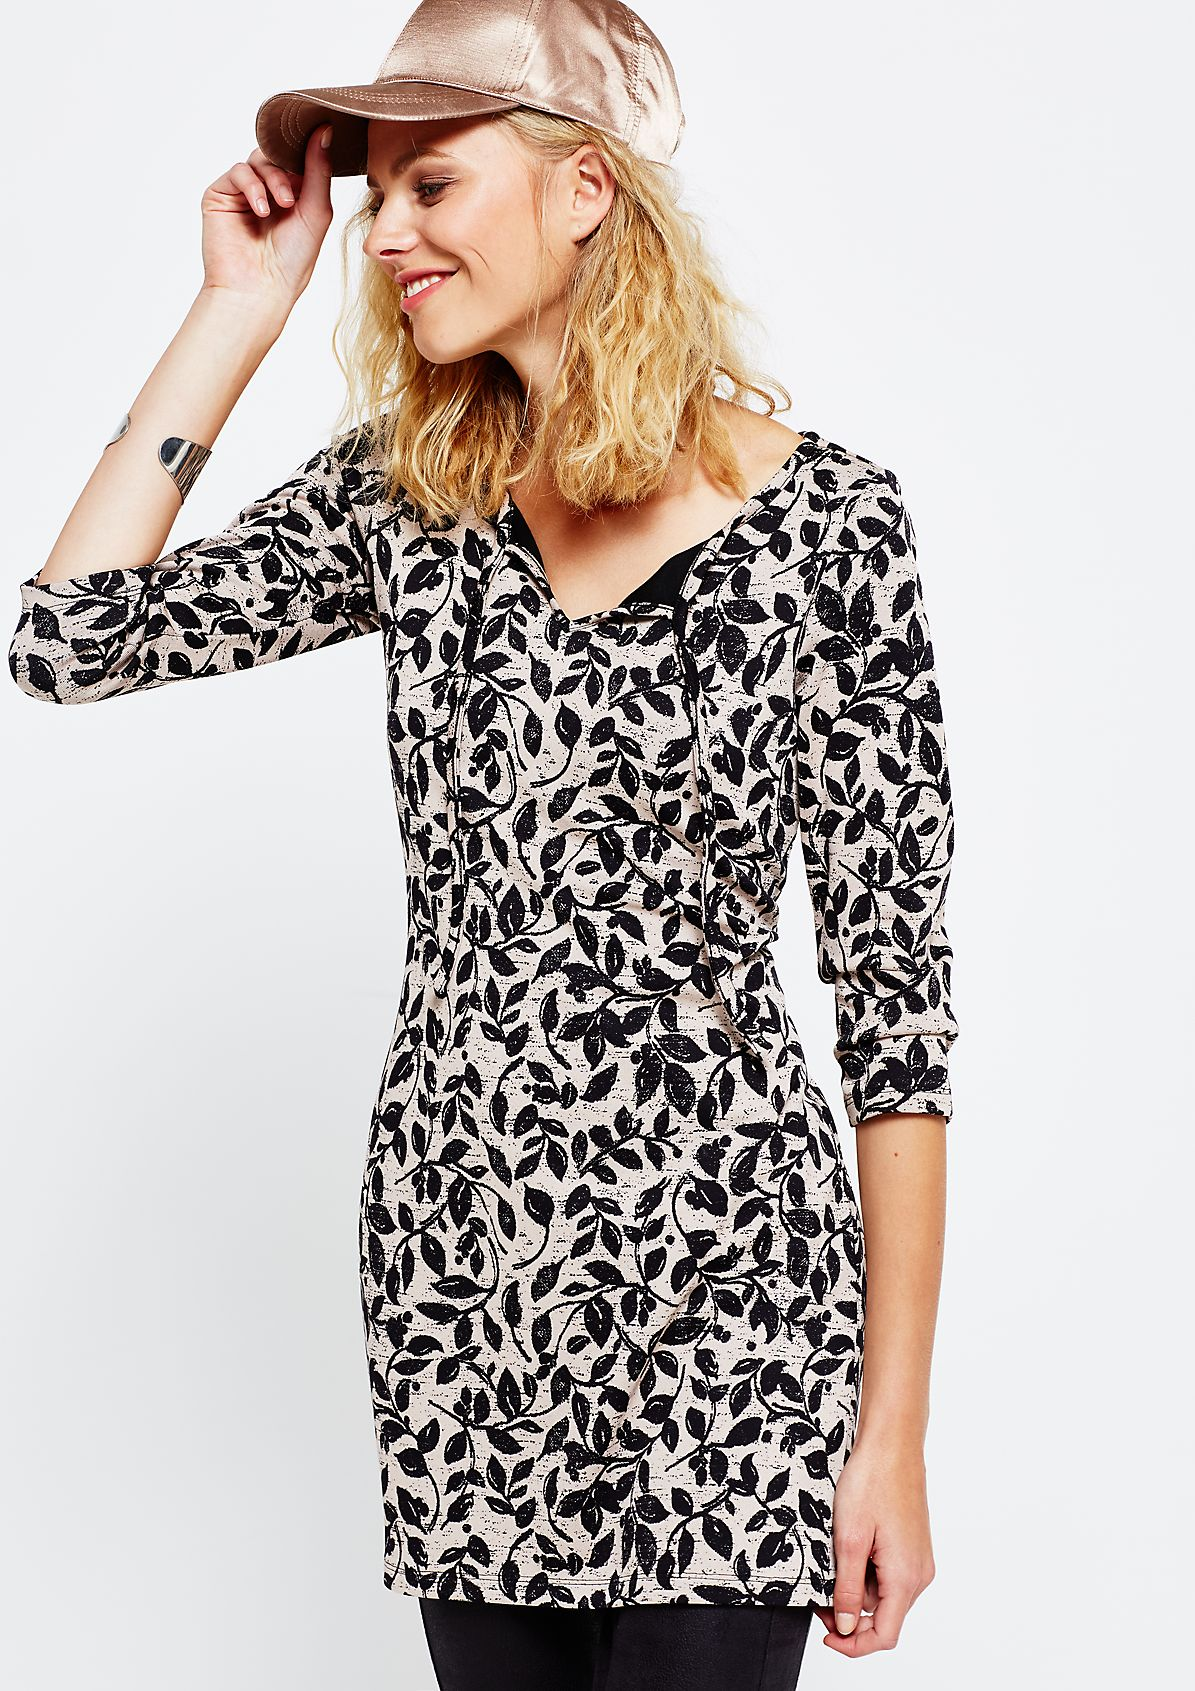 3/4-Arm Longshirt mit aufregendem Alloverprint